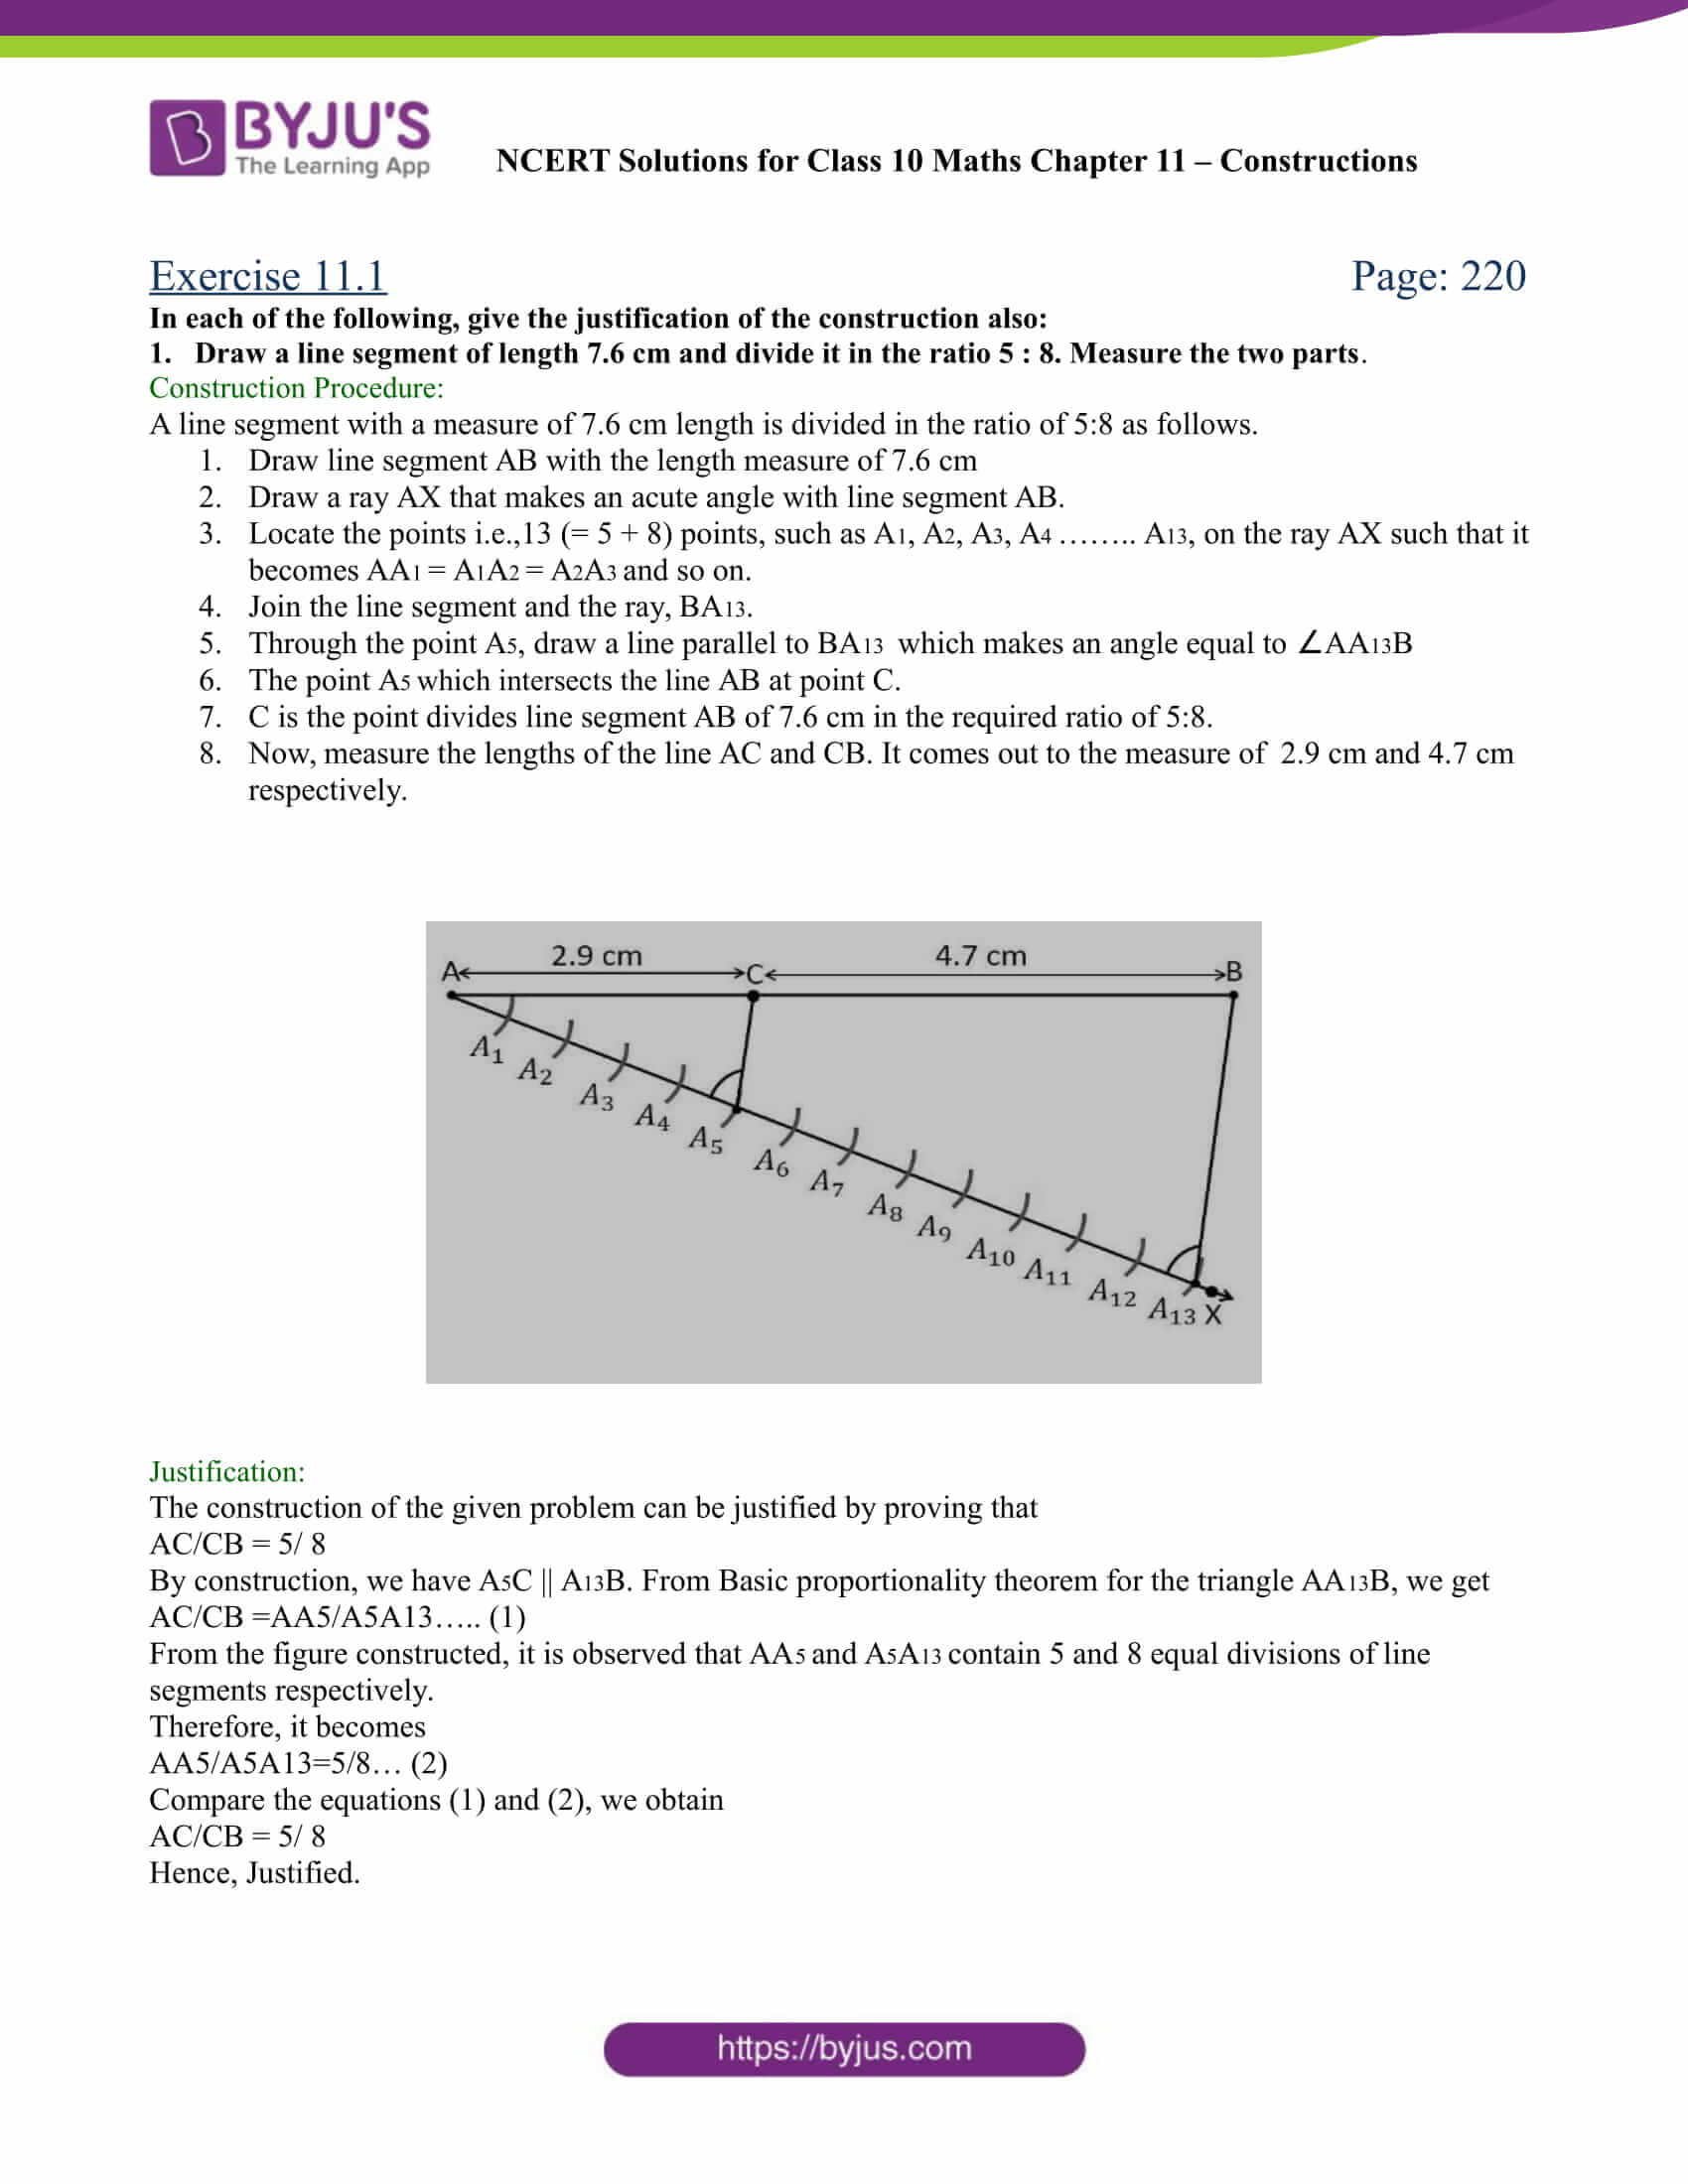 NCERT Solutions Class 10 Maths Chapter 11 Constructions - Download PDF!